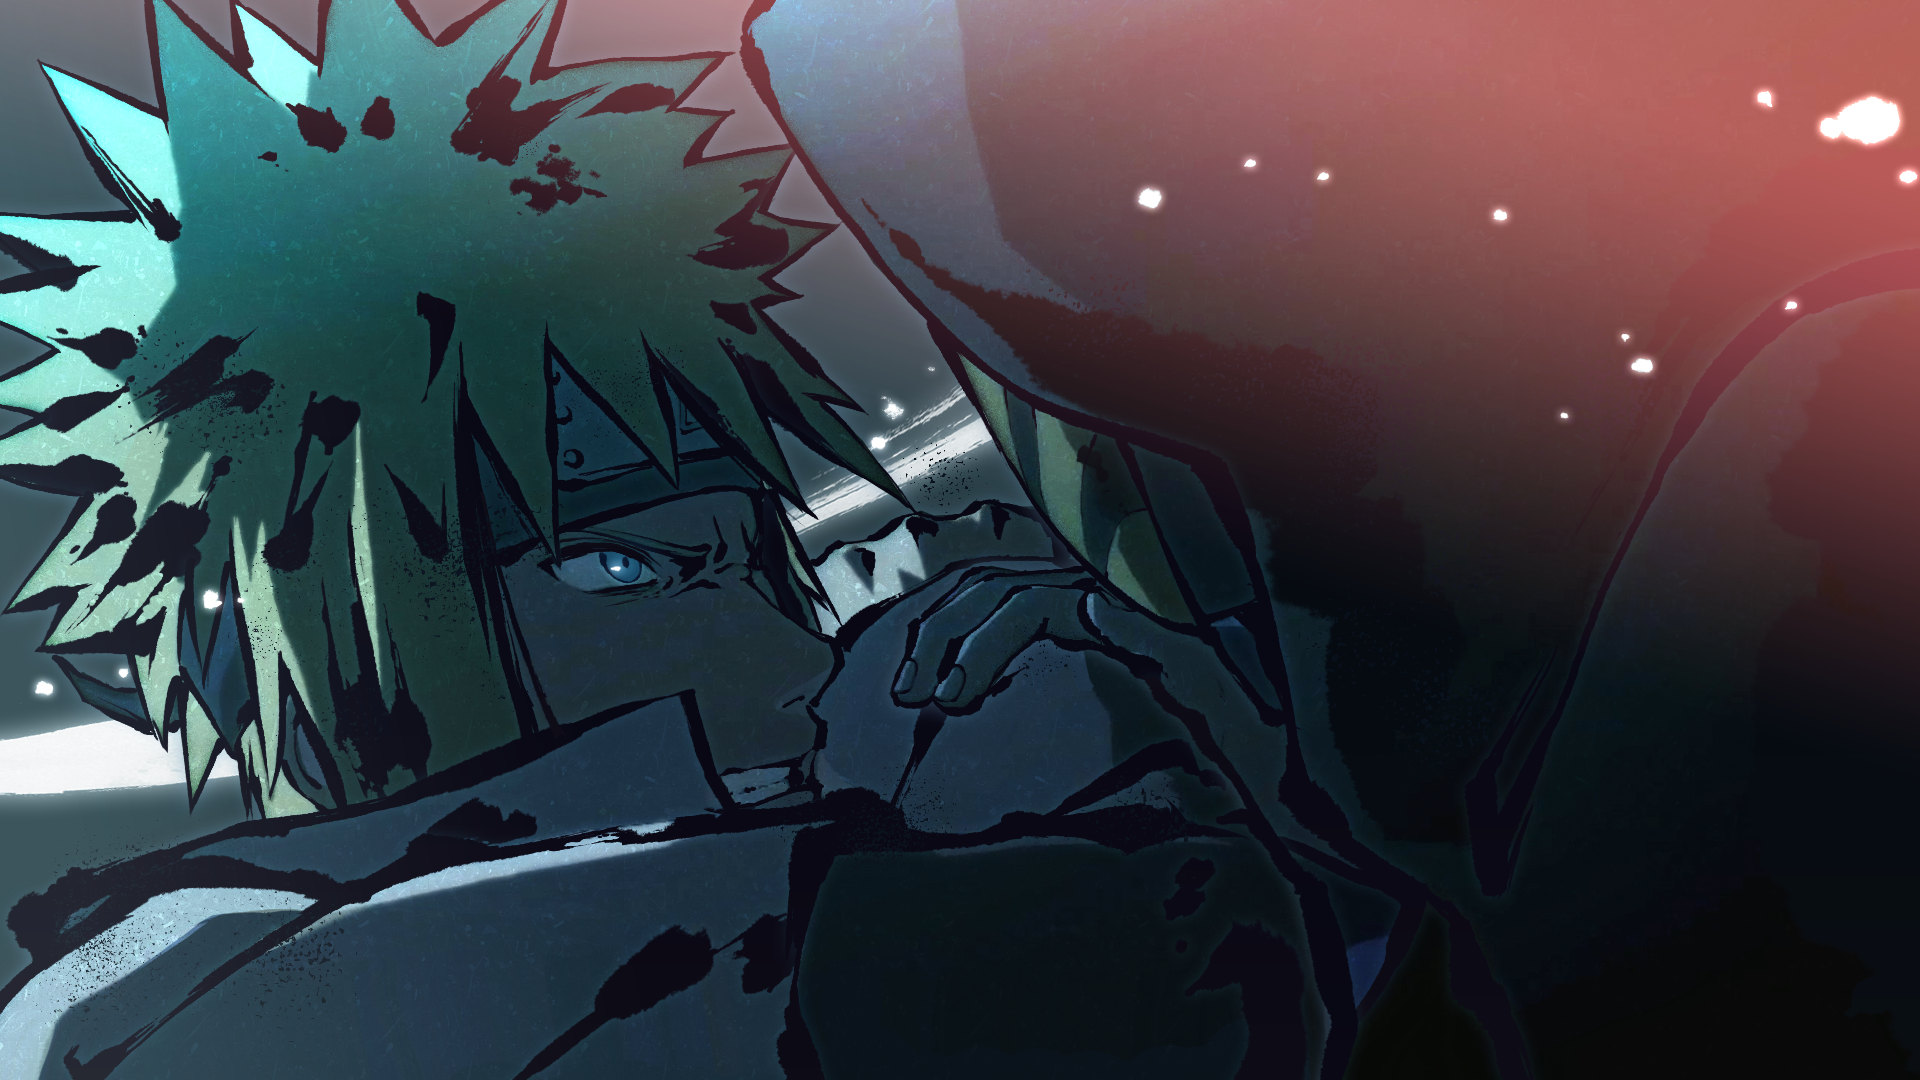 Minato, Obito - A Pitch Black World (Naruto Storm 4)